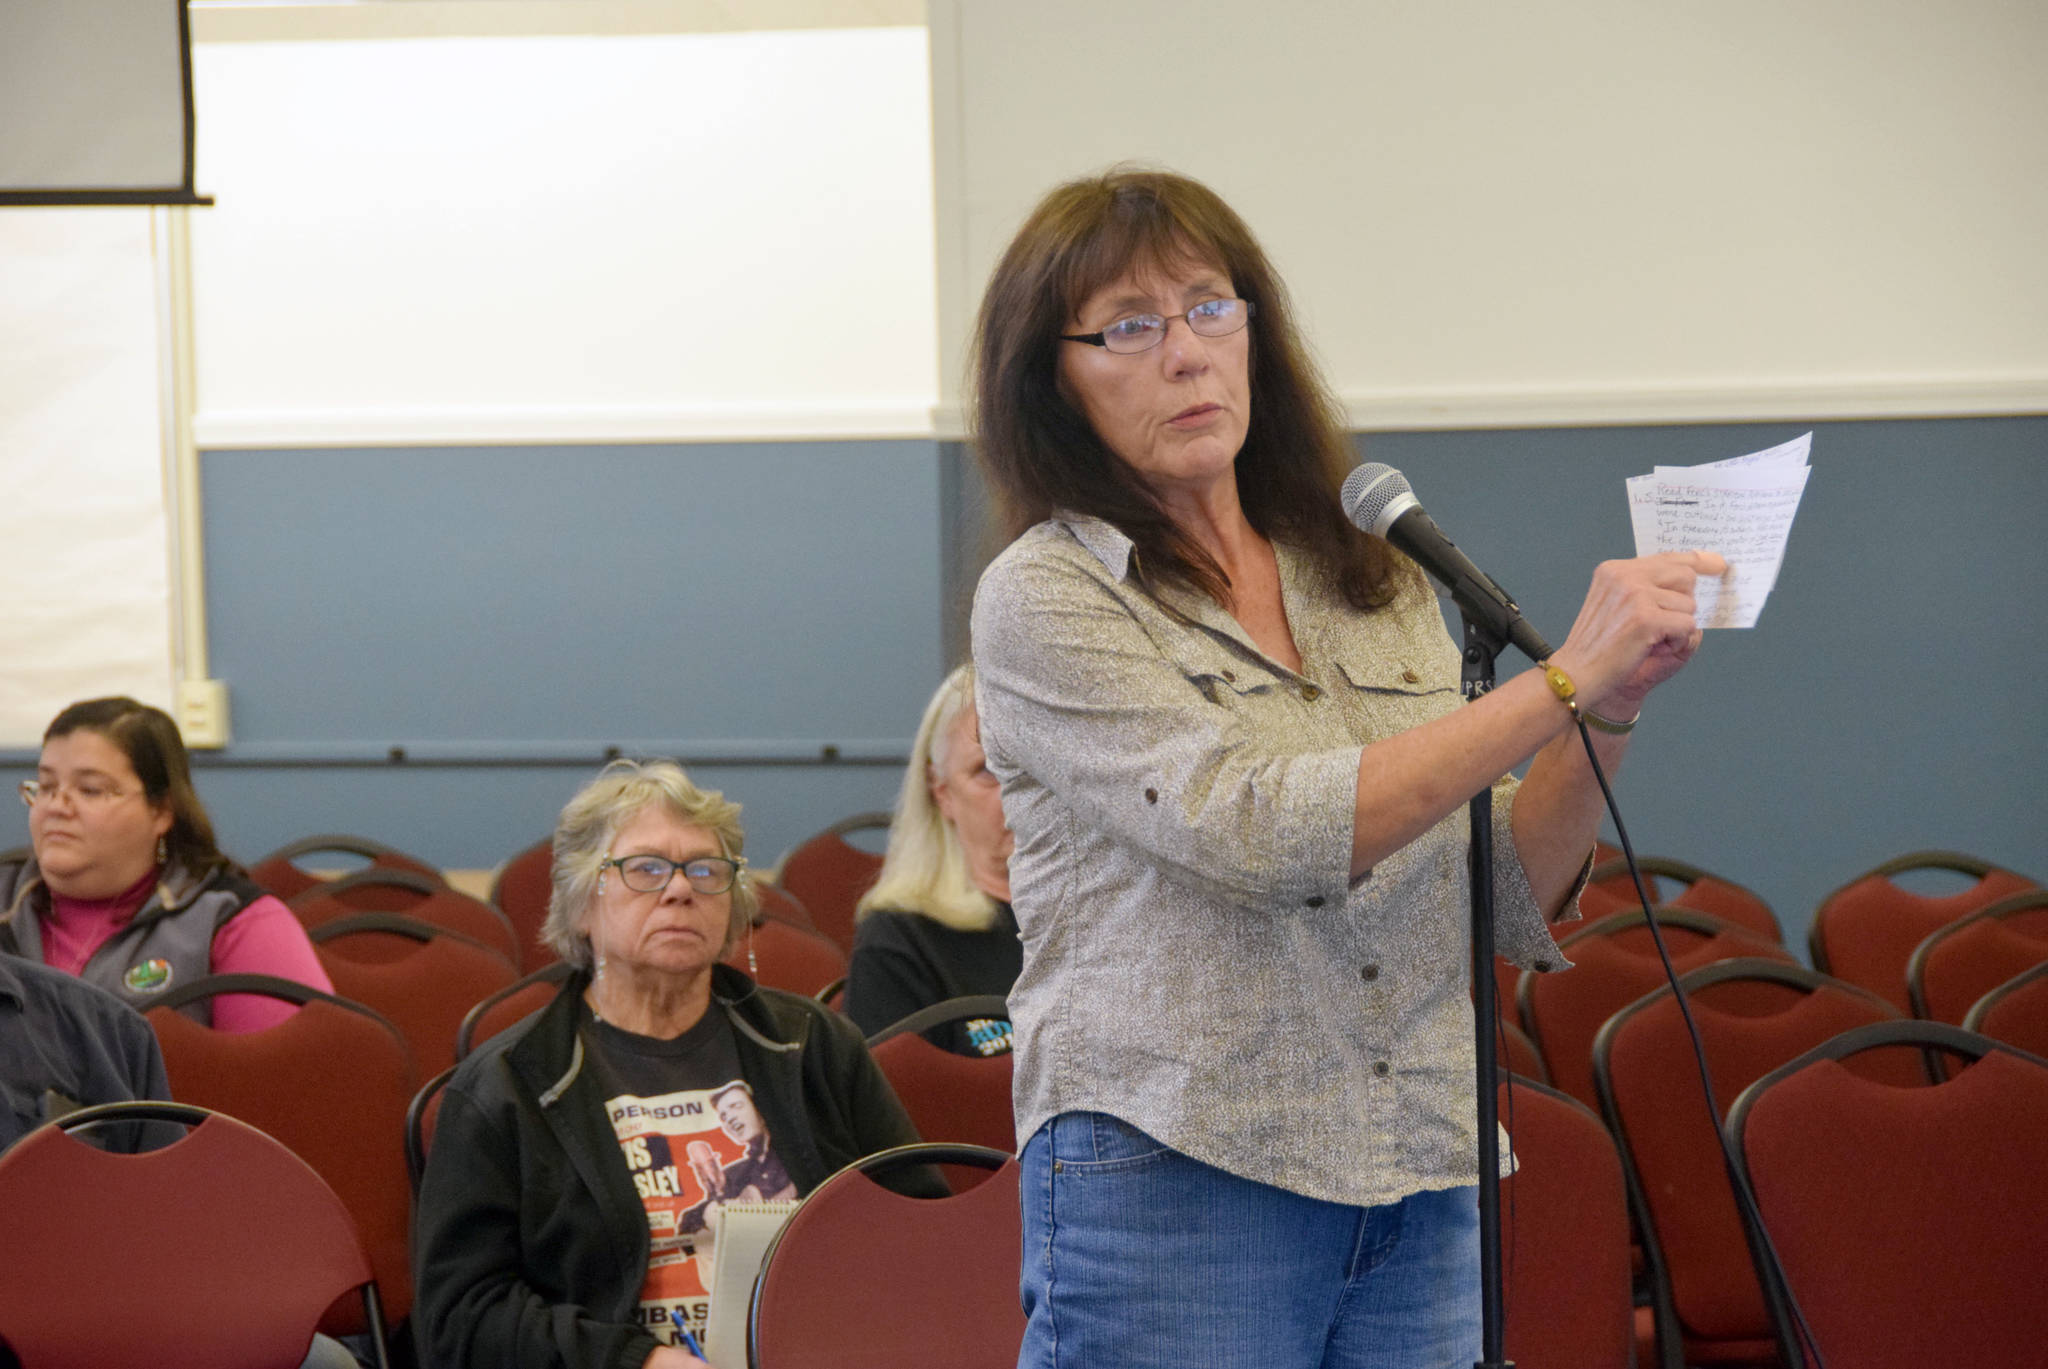 Brian Mazurek / Peninsula Clarion                                  Nikiski resident Linda Huhndorf speaks to members of the Federal Energy Regulatory Commission regarding the draft environmental impact statement for the Alaska LNG Project at the Nikiski Community Recreation Center on Wednesday.